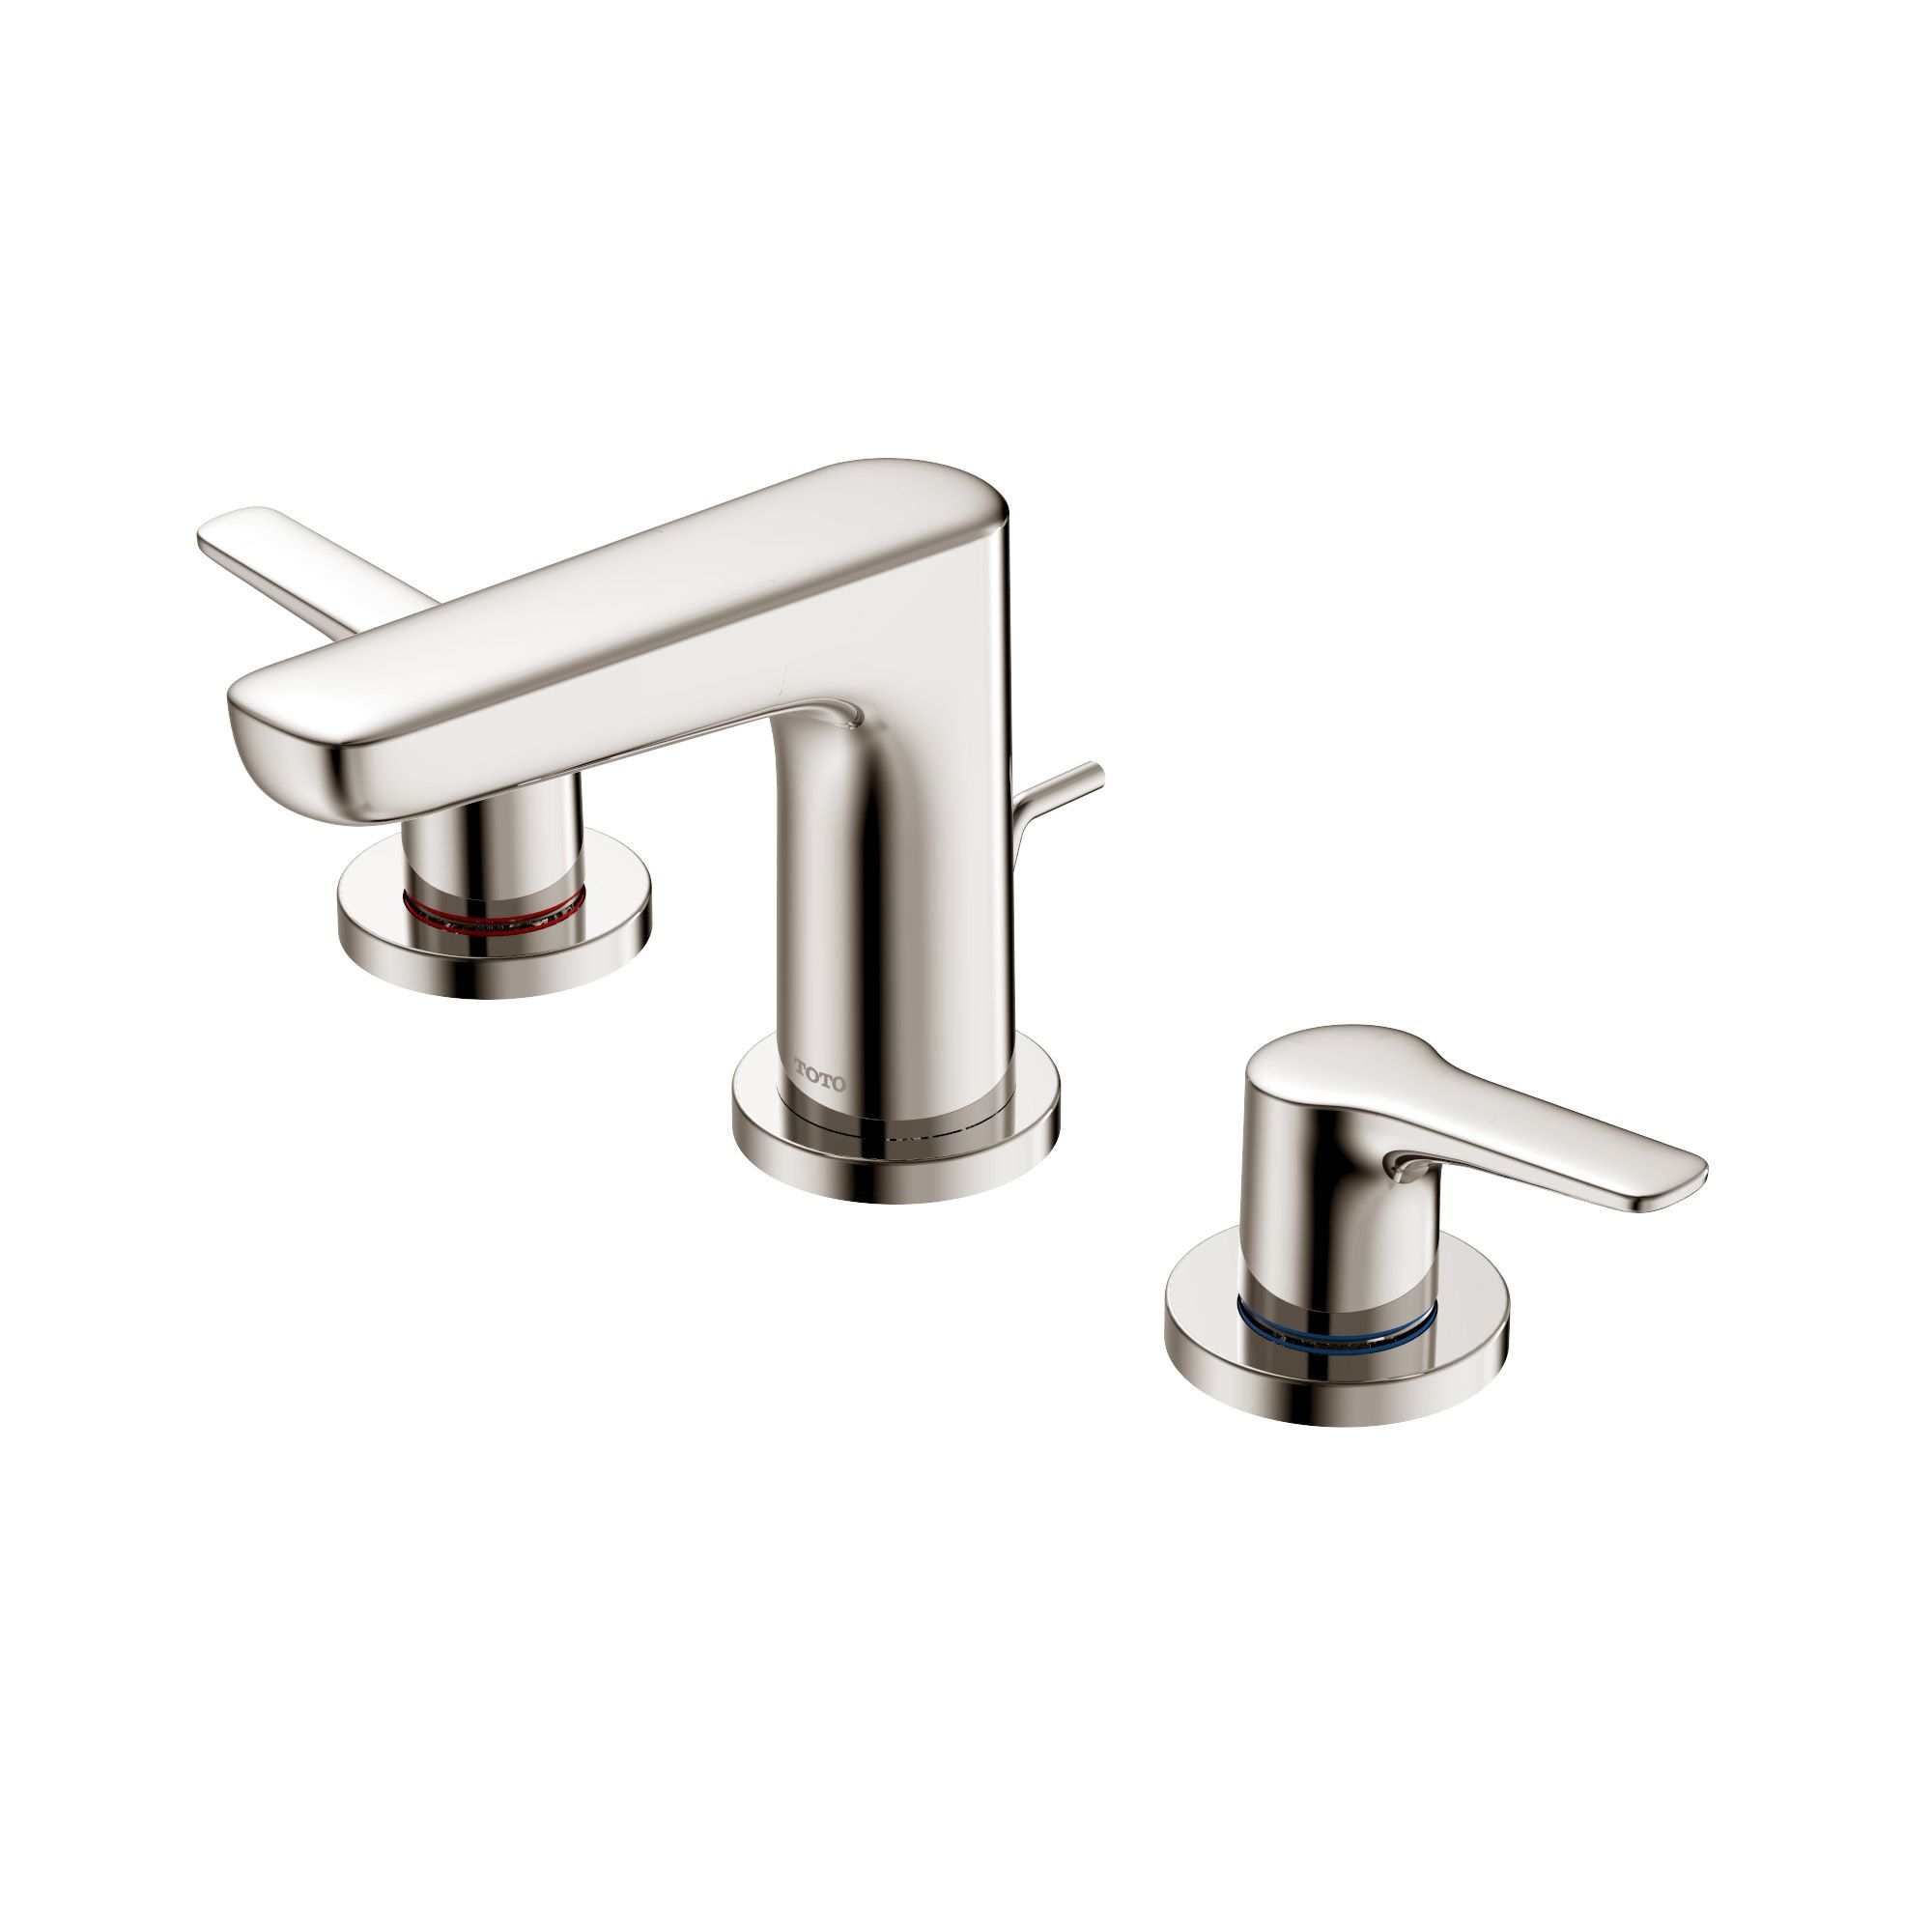 Toto Gs 1 2 Gpm Two Handle Widespread Bathroom Sink Faucet